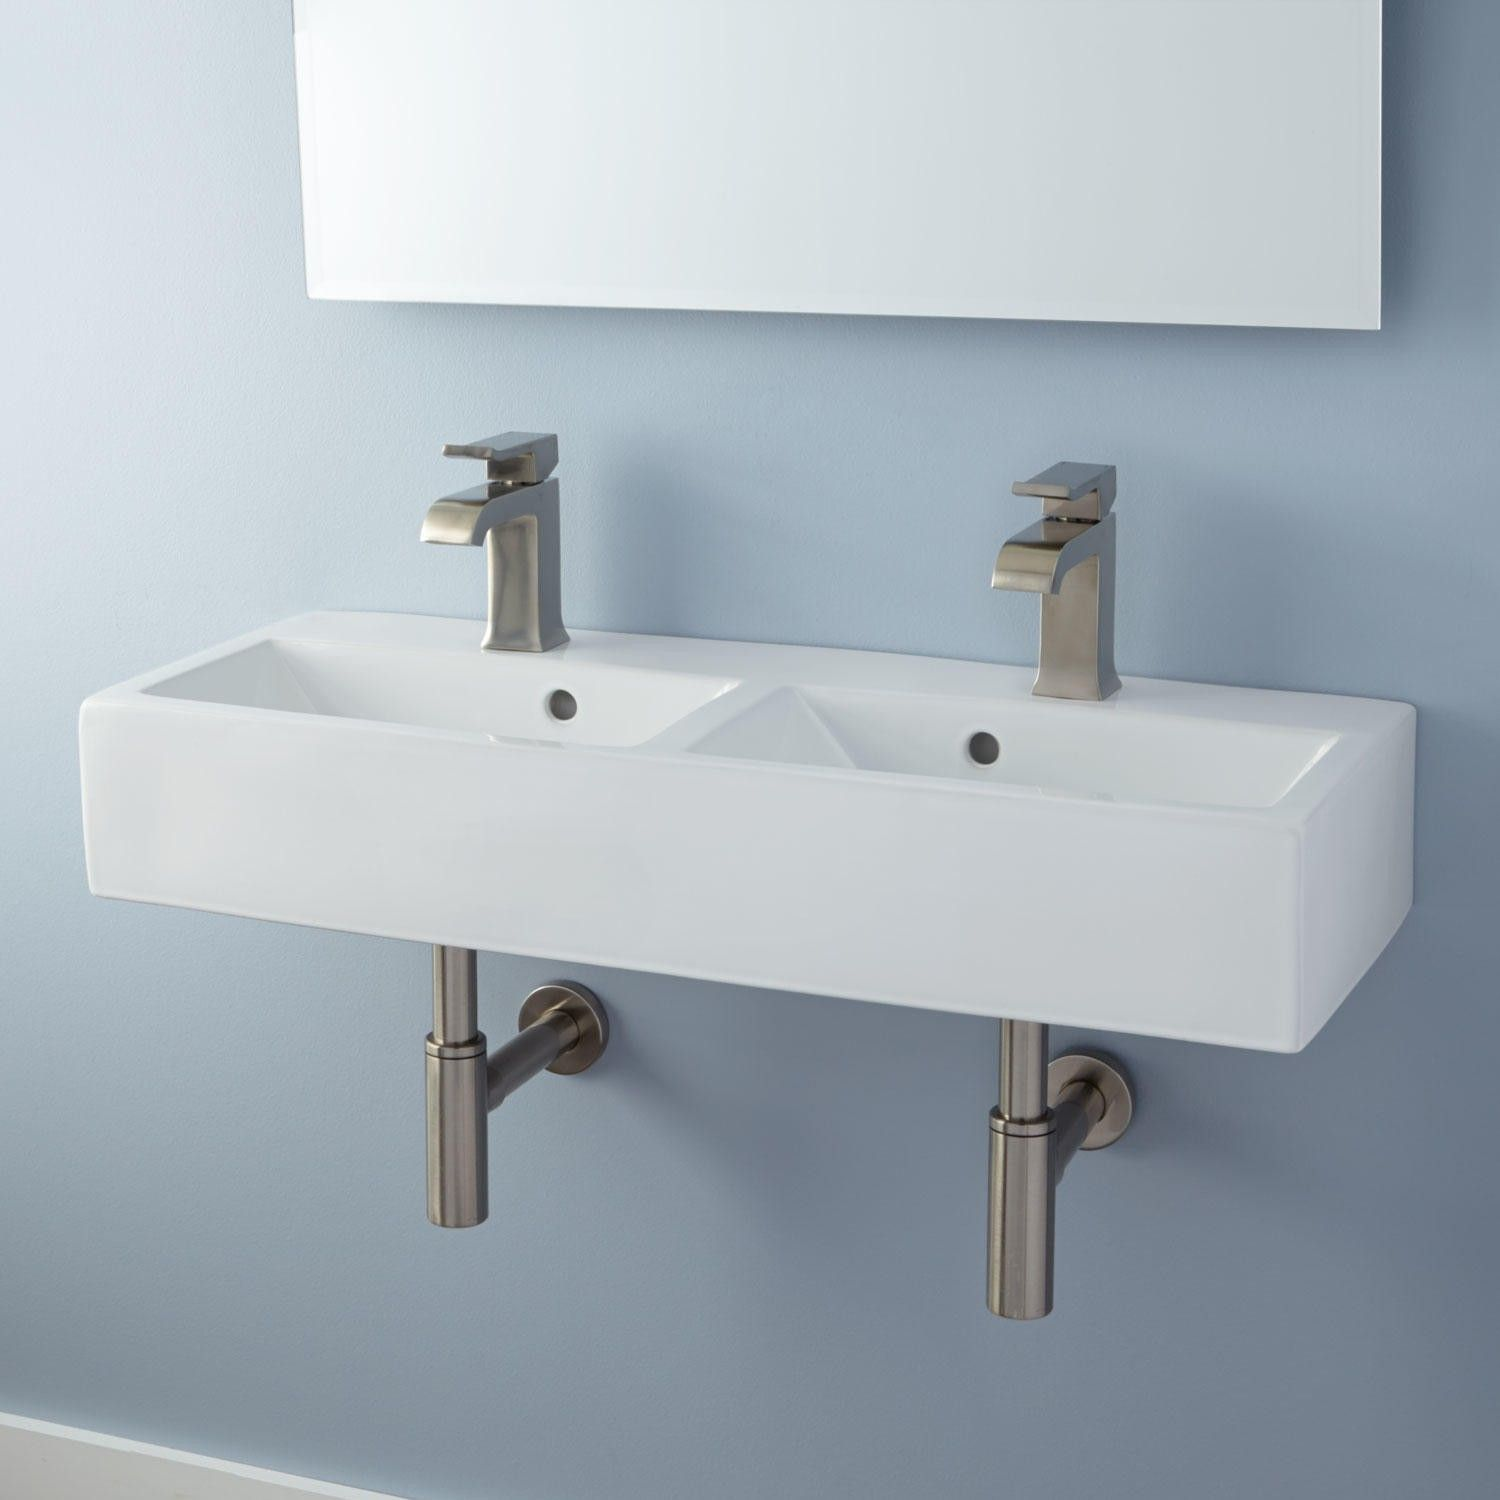 Lowen Double-Bowl Bathroom Sink Length: 33-3/8\